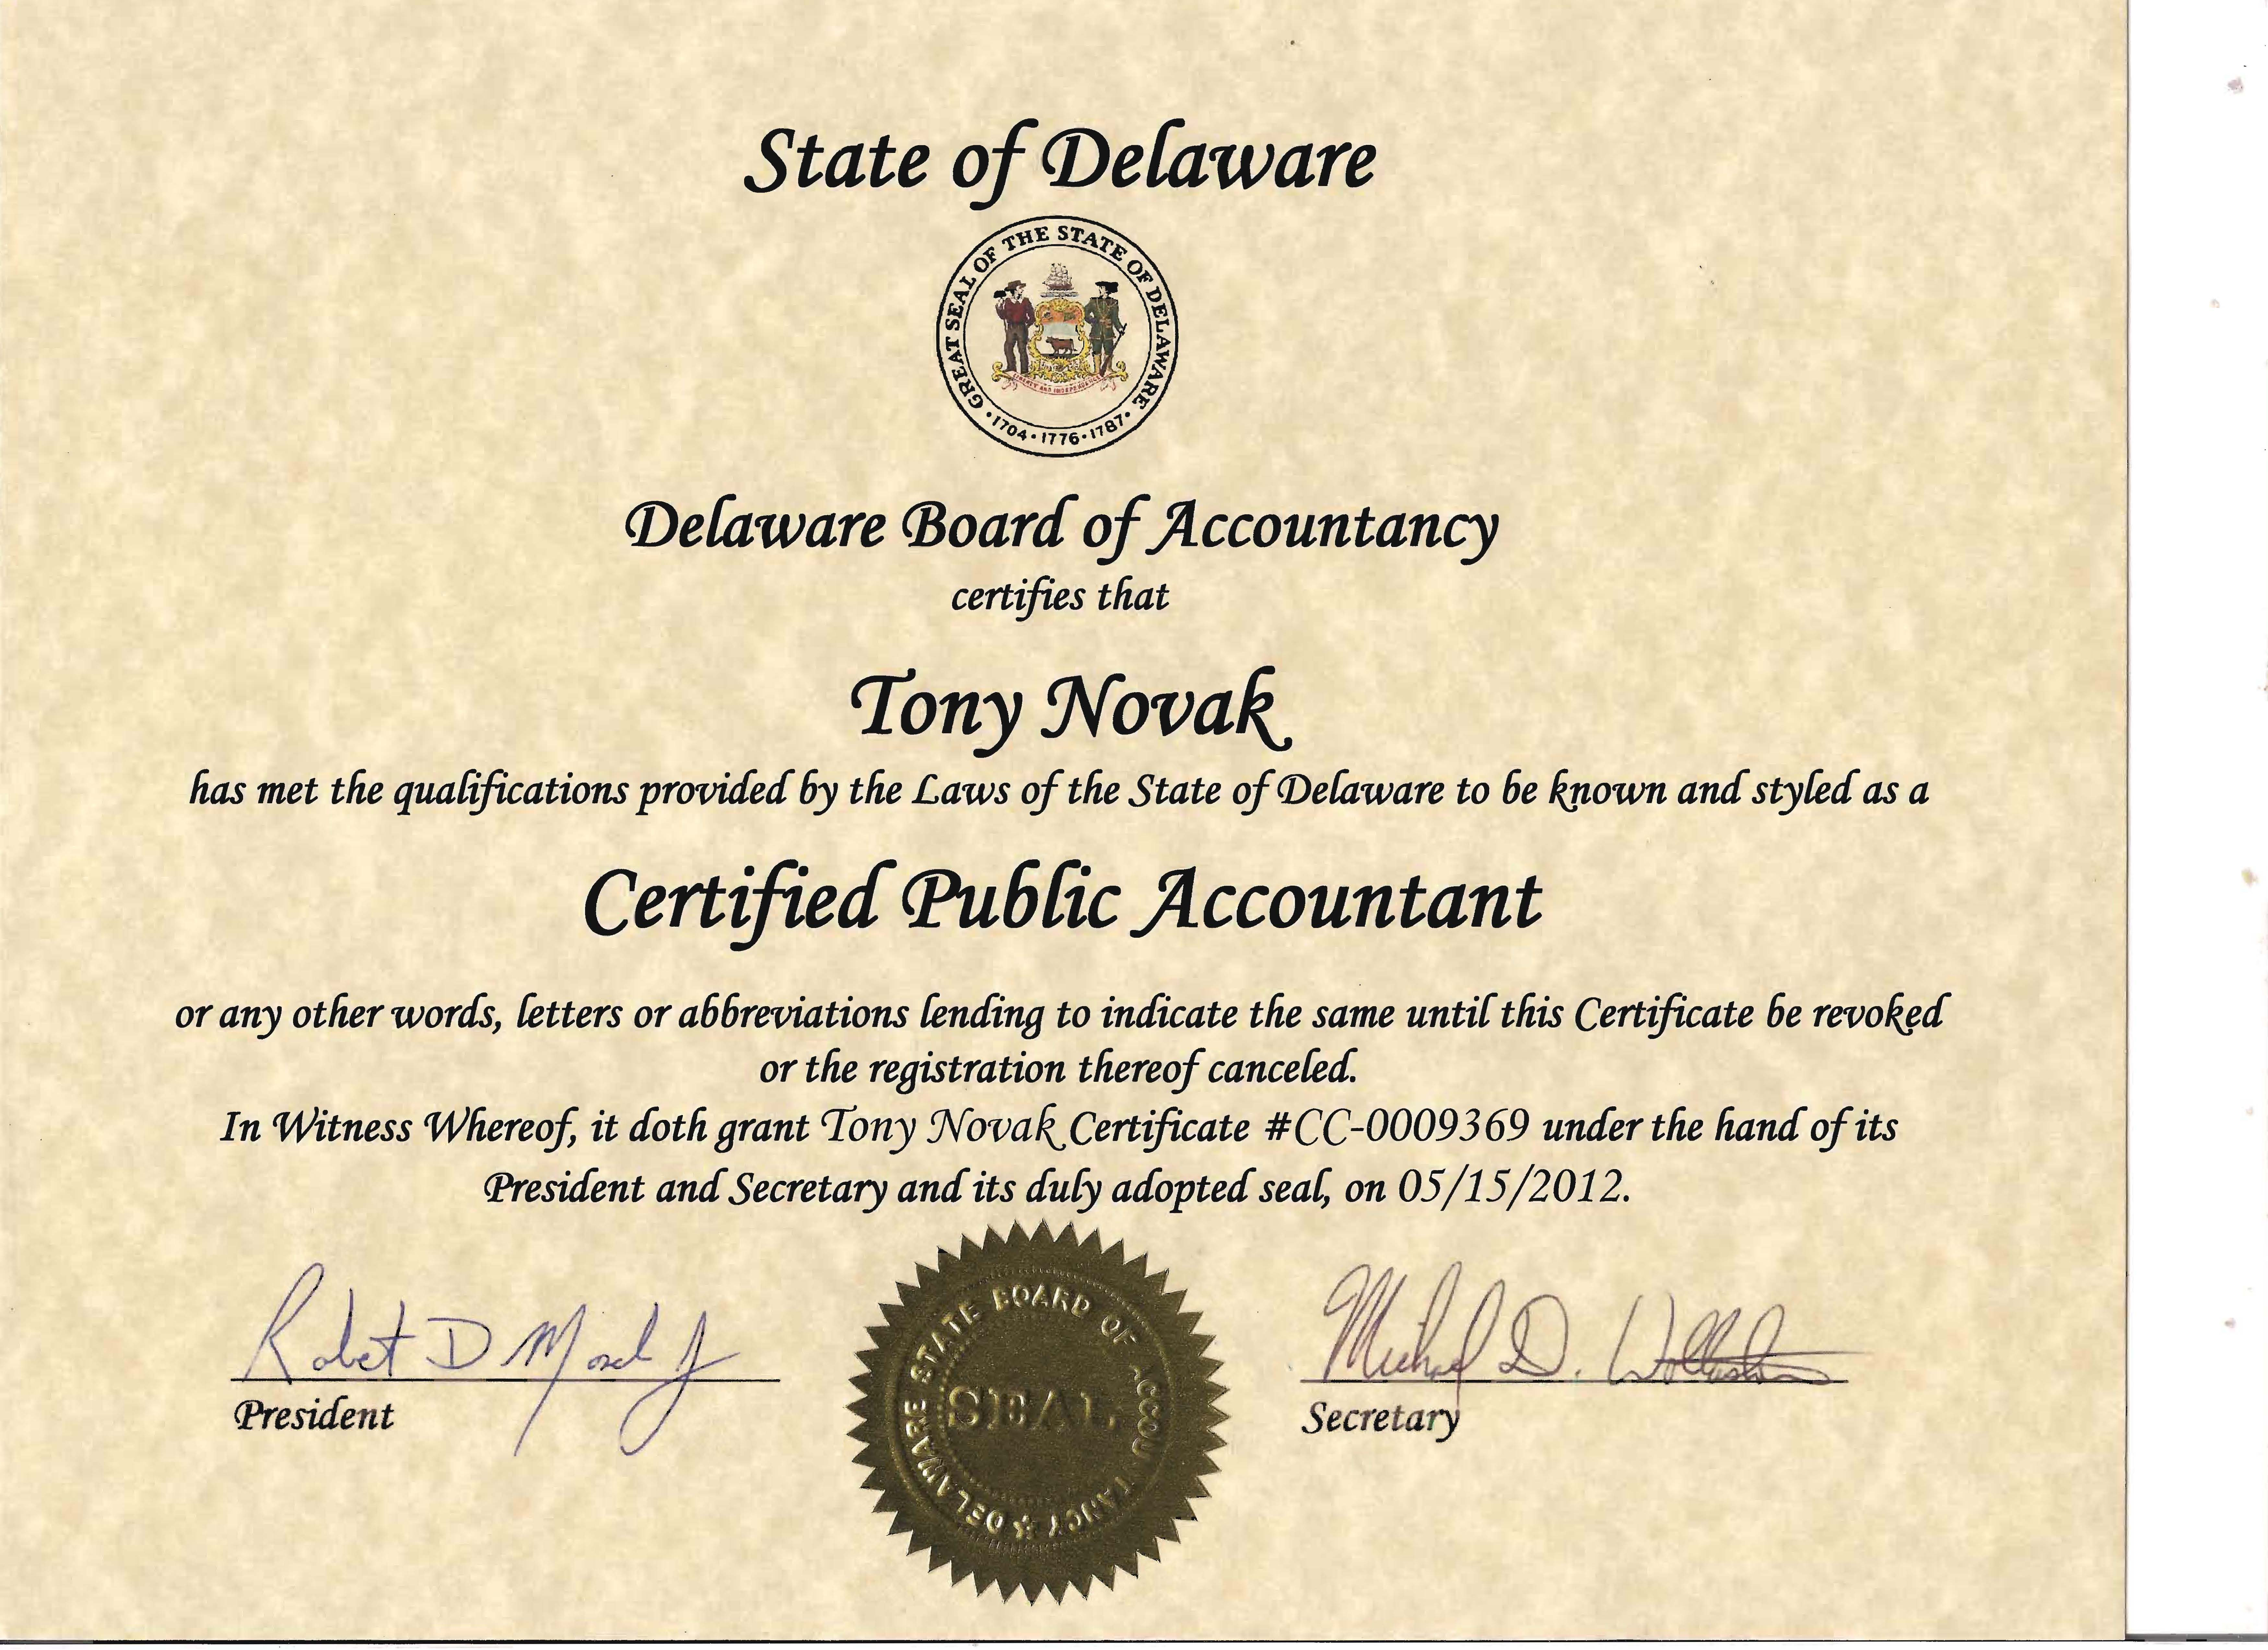 Forensic accounting certificate best design sertificate 2017 forensic accounting certification programs 1betcityfo Image collections